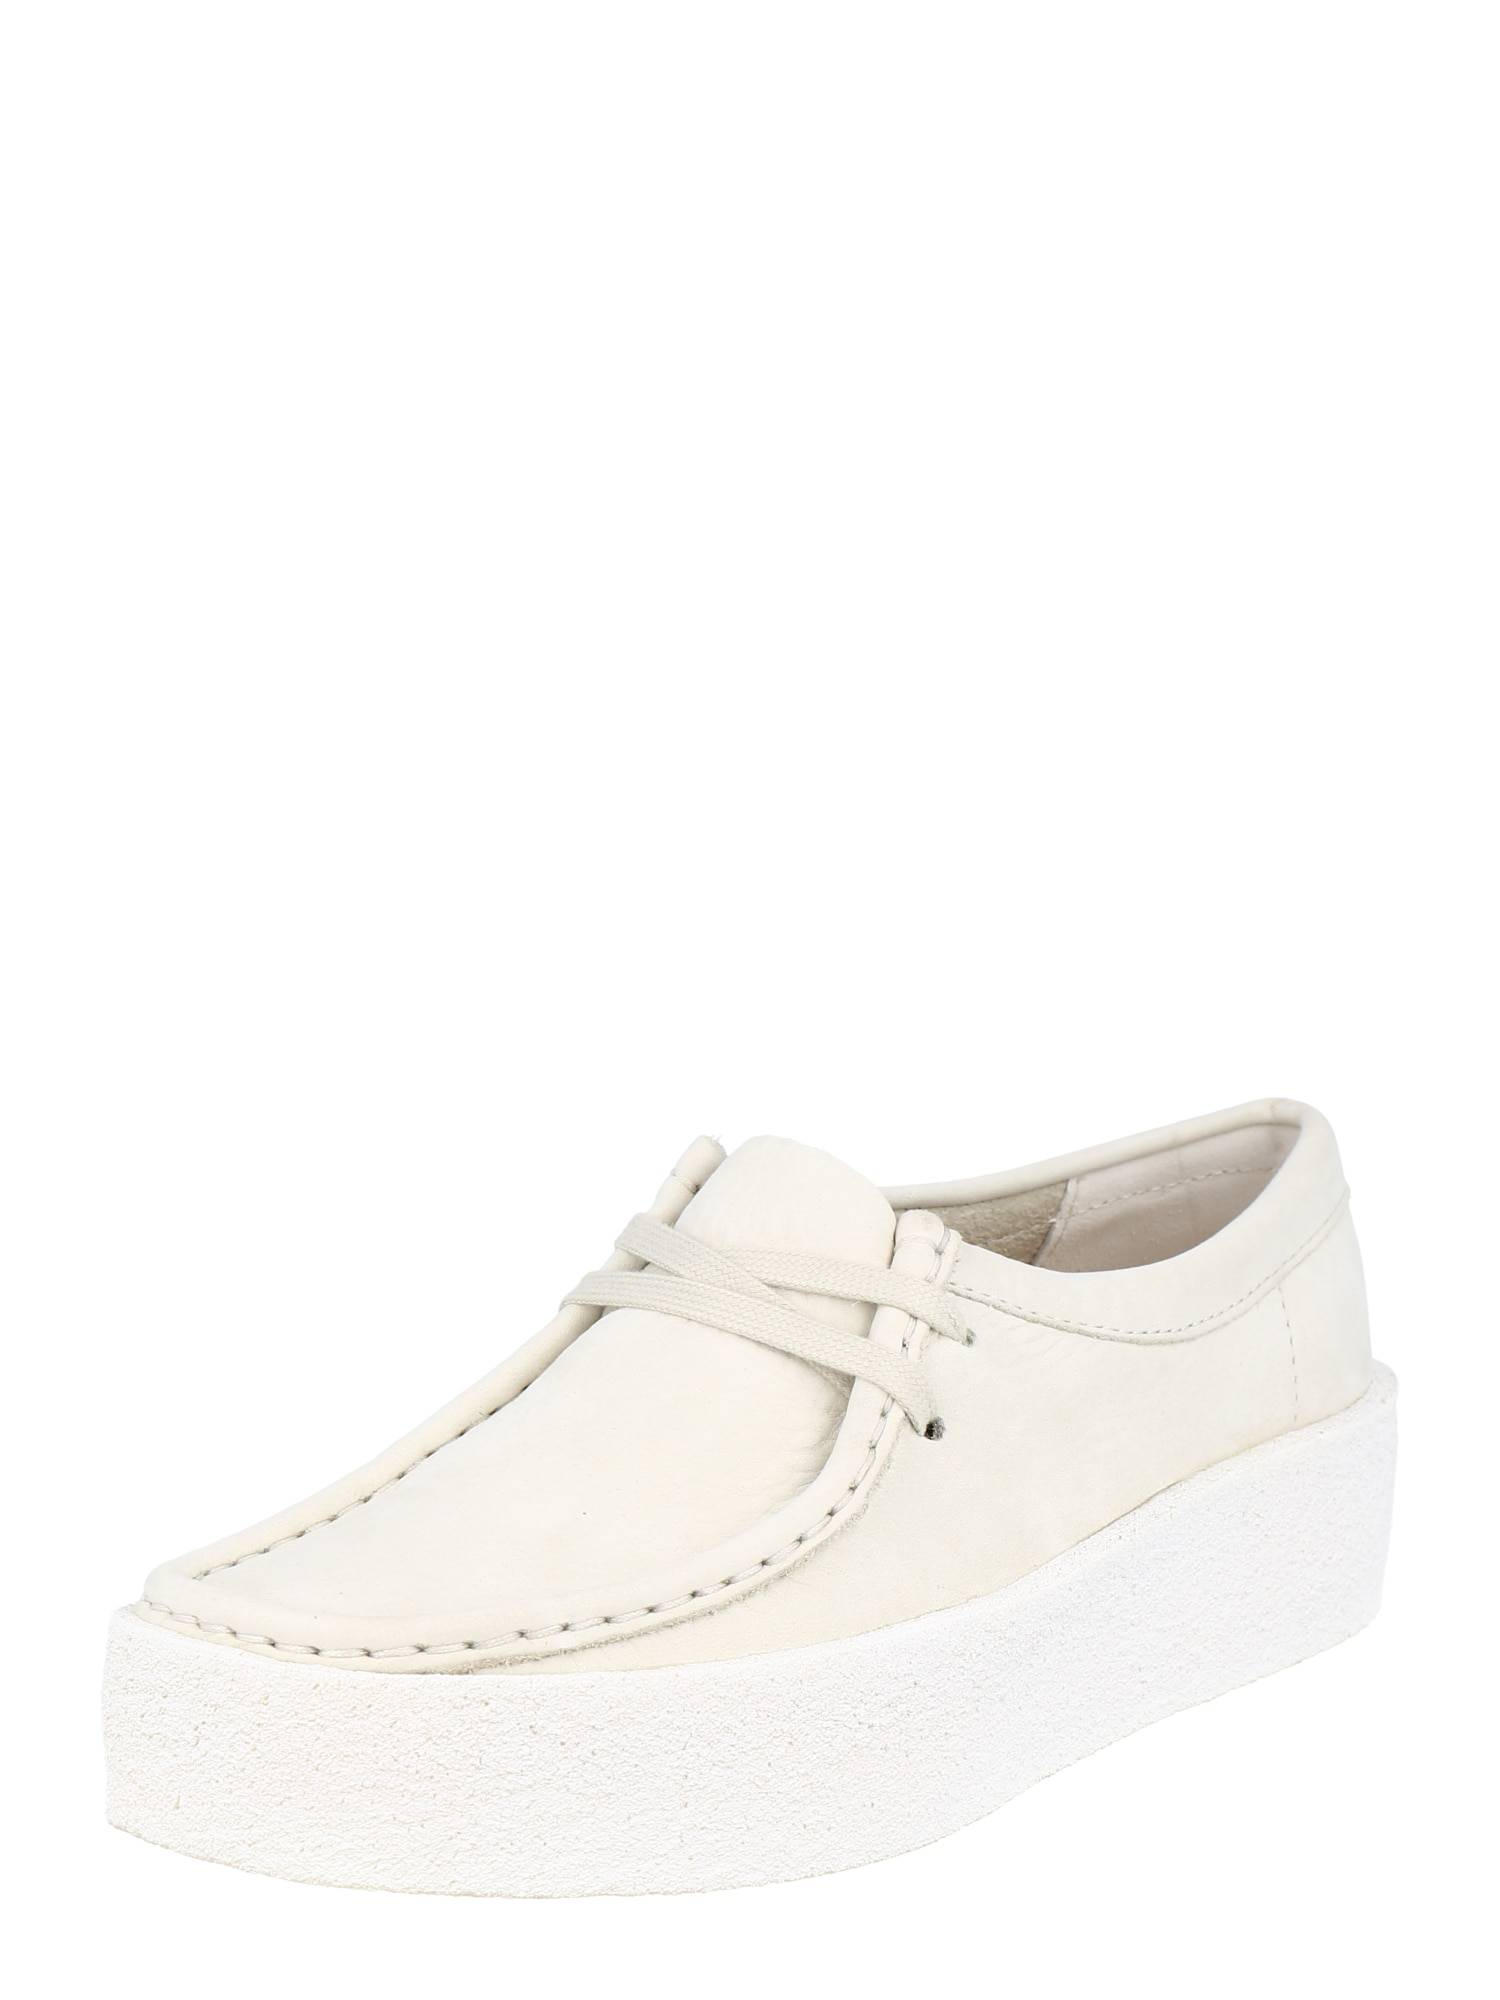 Clarks Originals Chaussure à lacets 'Wallabee Cup'  - Blanc - Taille: 3.5 - female